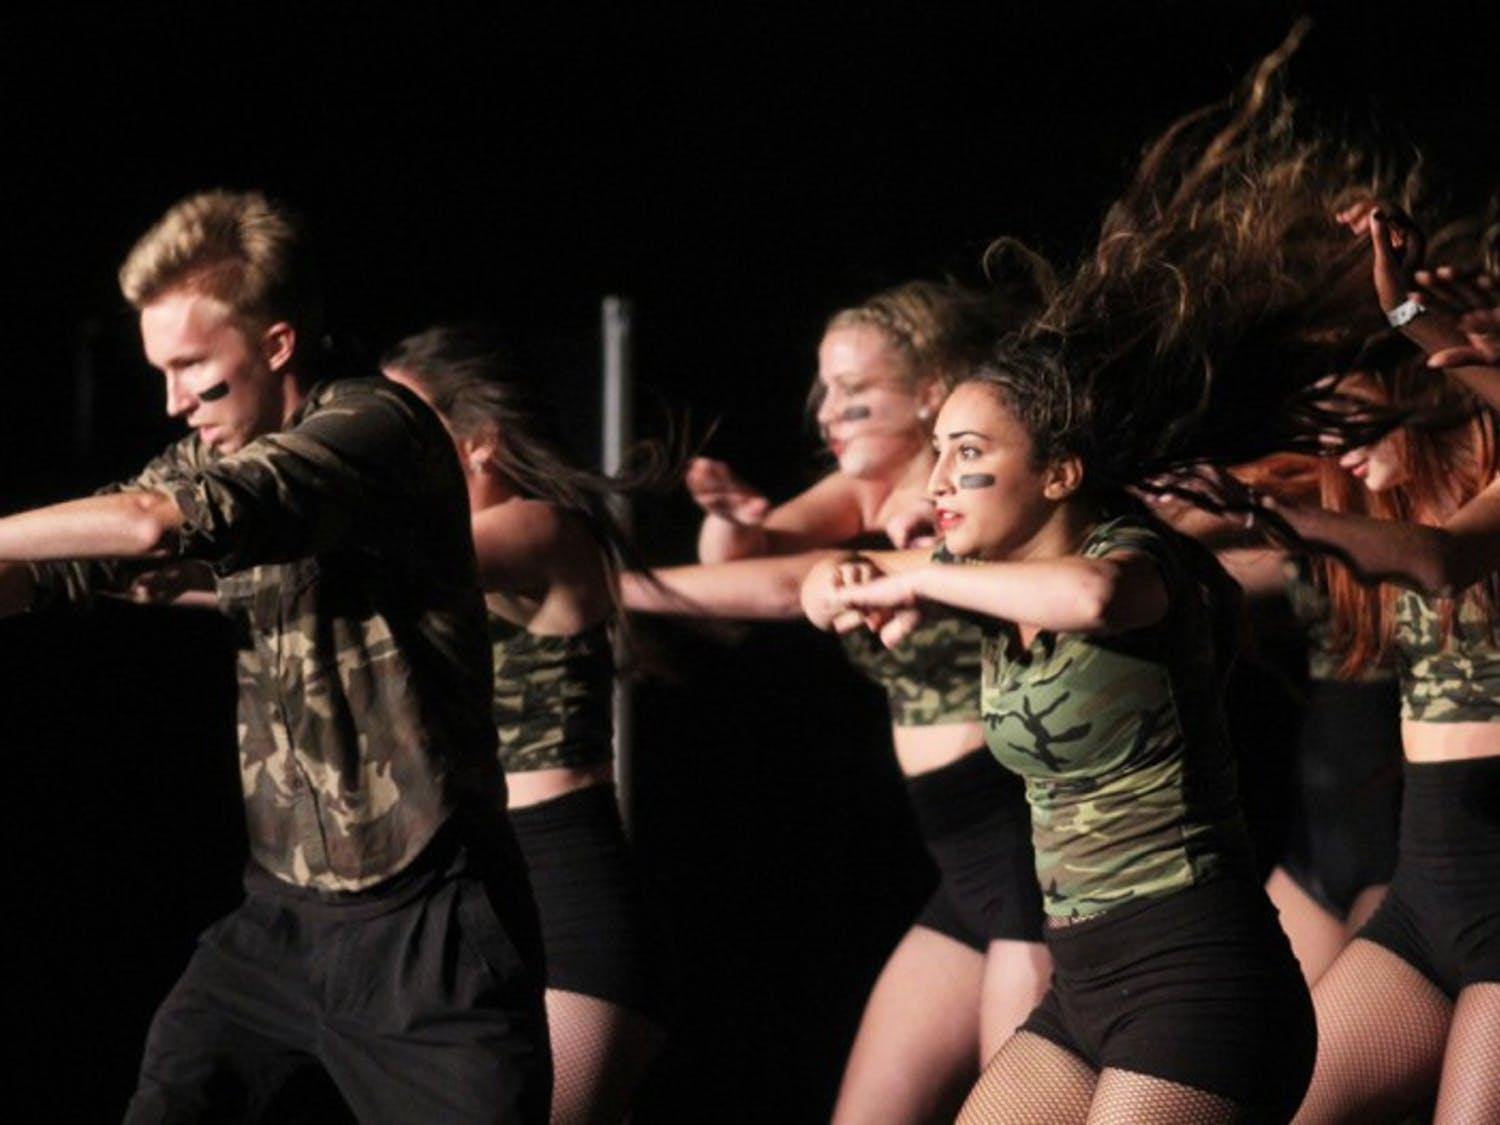 Danza wins first place in the dance category at Gator Growl Talent Night Wednesday night at the Reitz Union Grand Ballroom. The dance team will perform at Gator Growl Nov. 9.